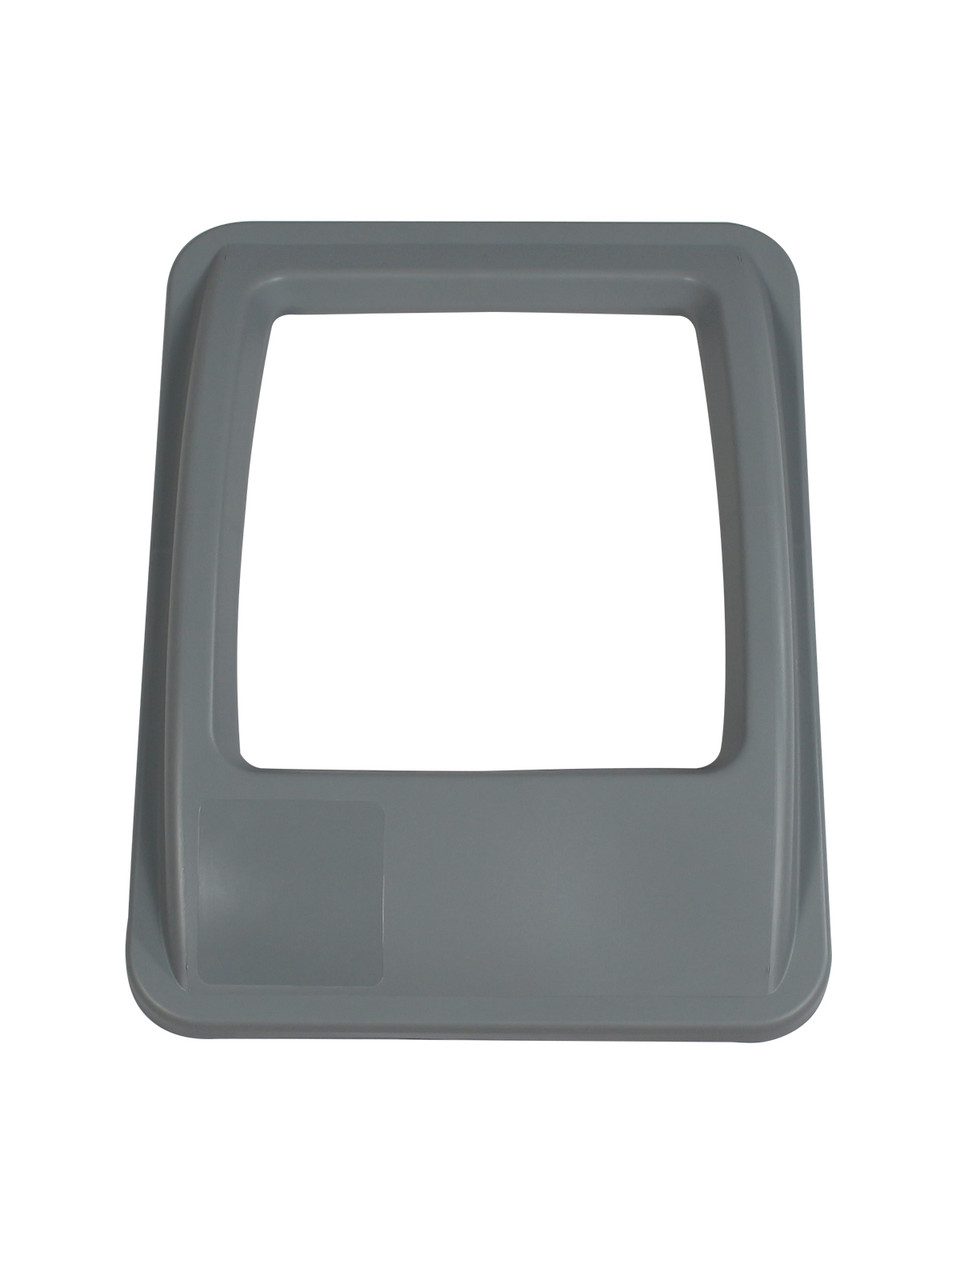 RECTANGLE OPENING LID